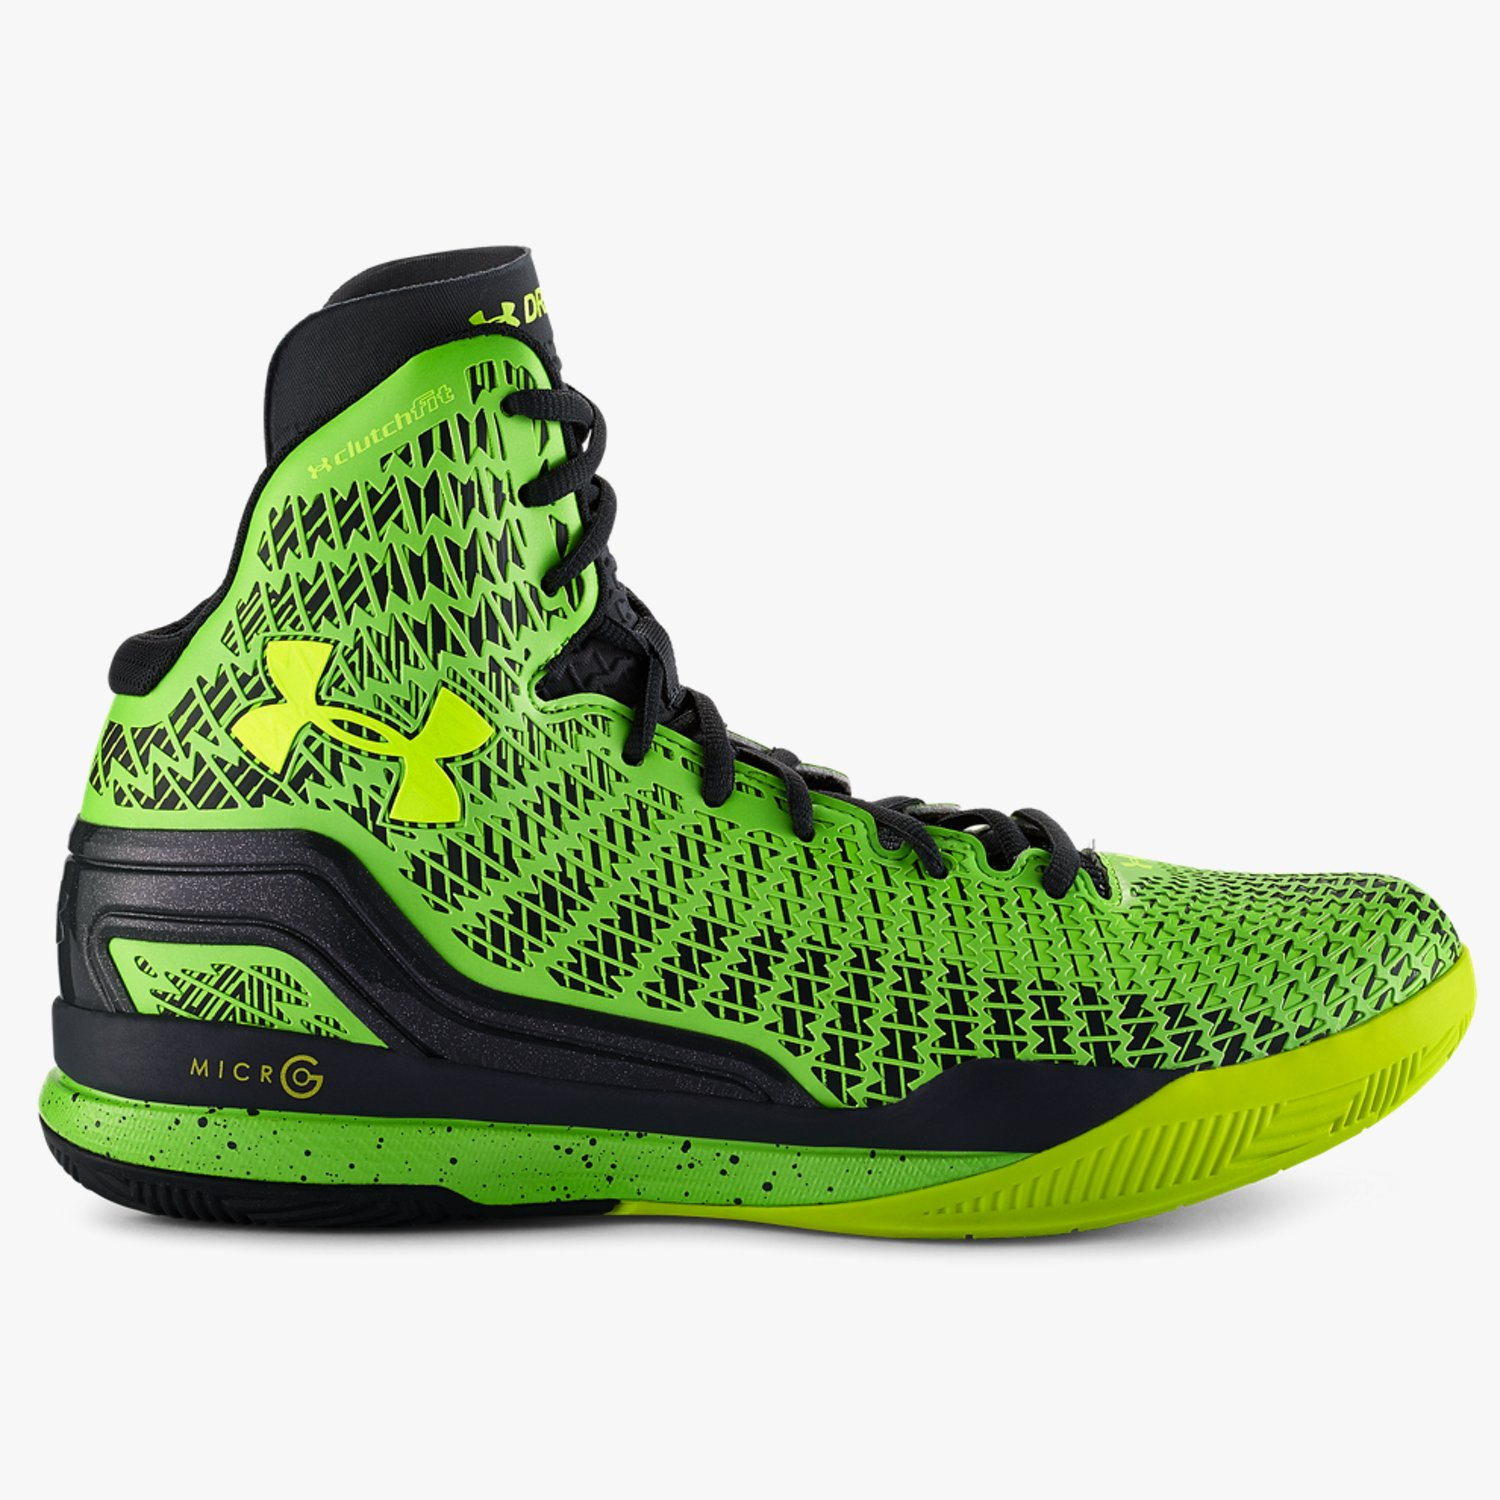 Under Armour UA ClutchFit Drive Mid Basketballschuhe Lead/Hyper Green/High-Vis Yellow-30